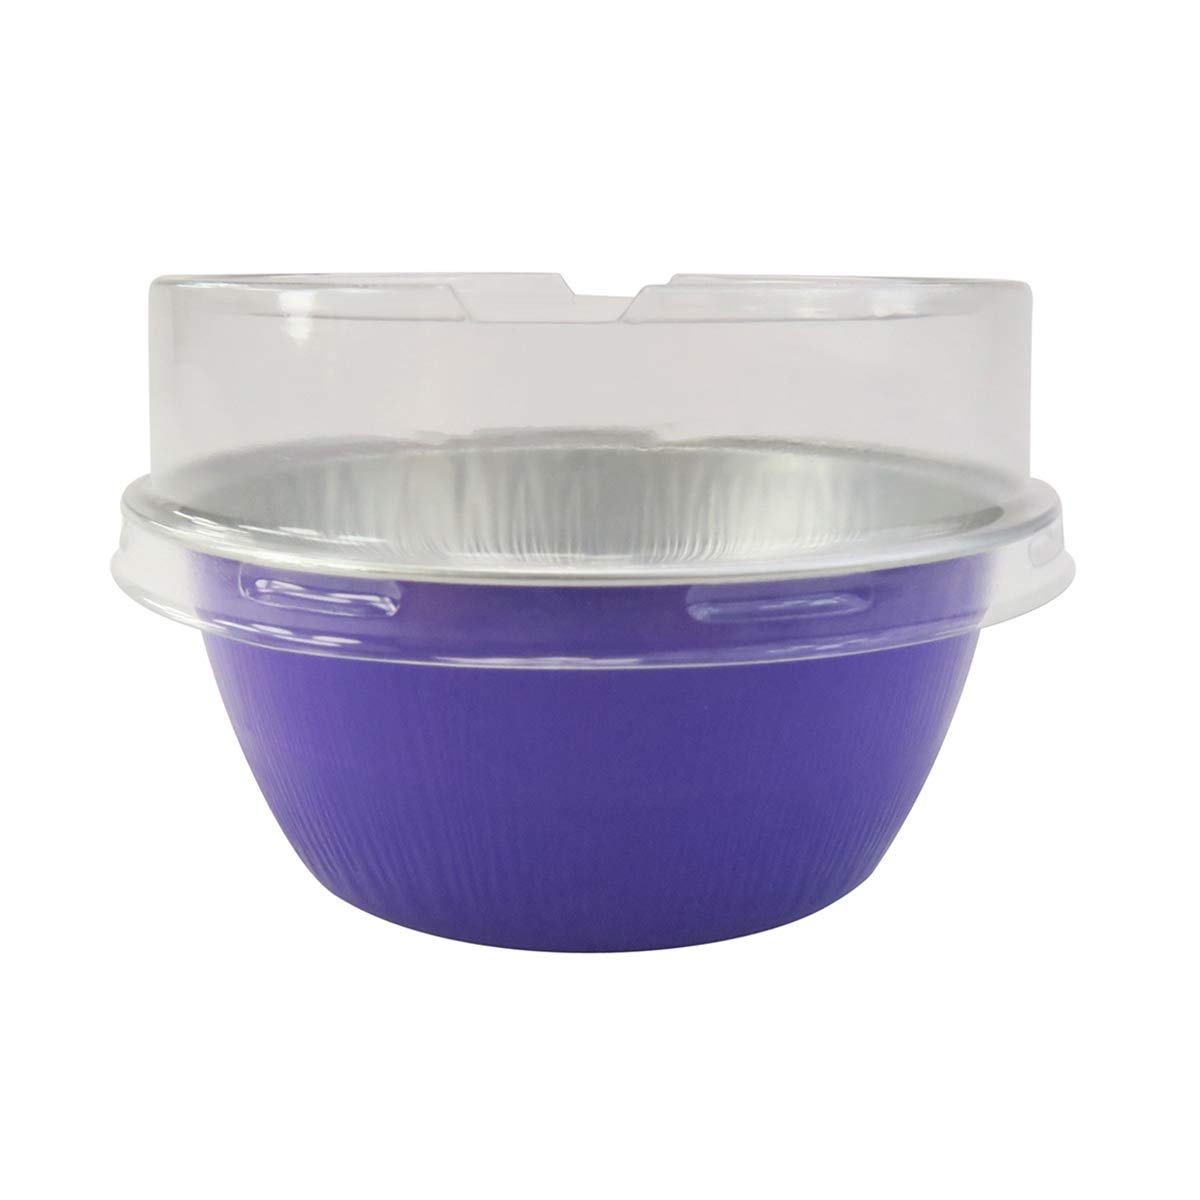 KitchenDance Disposable Aluminum Colored Baking Cups- Creme Brulee cups- Dessert Cups- 4 oz. Size with Lids (100, Purple w/Stackable Lid)